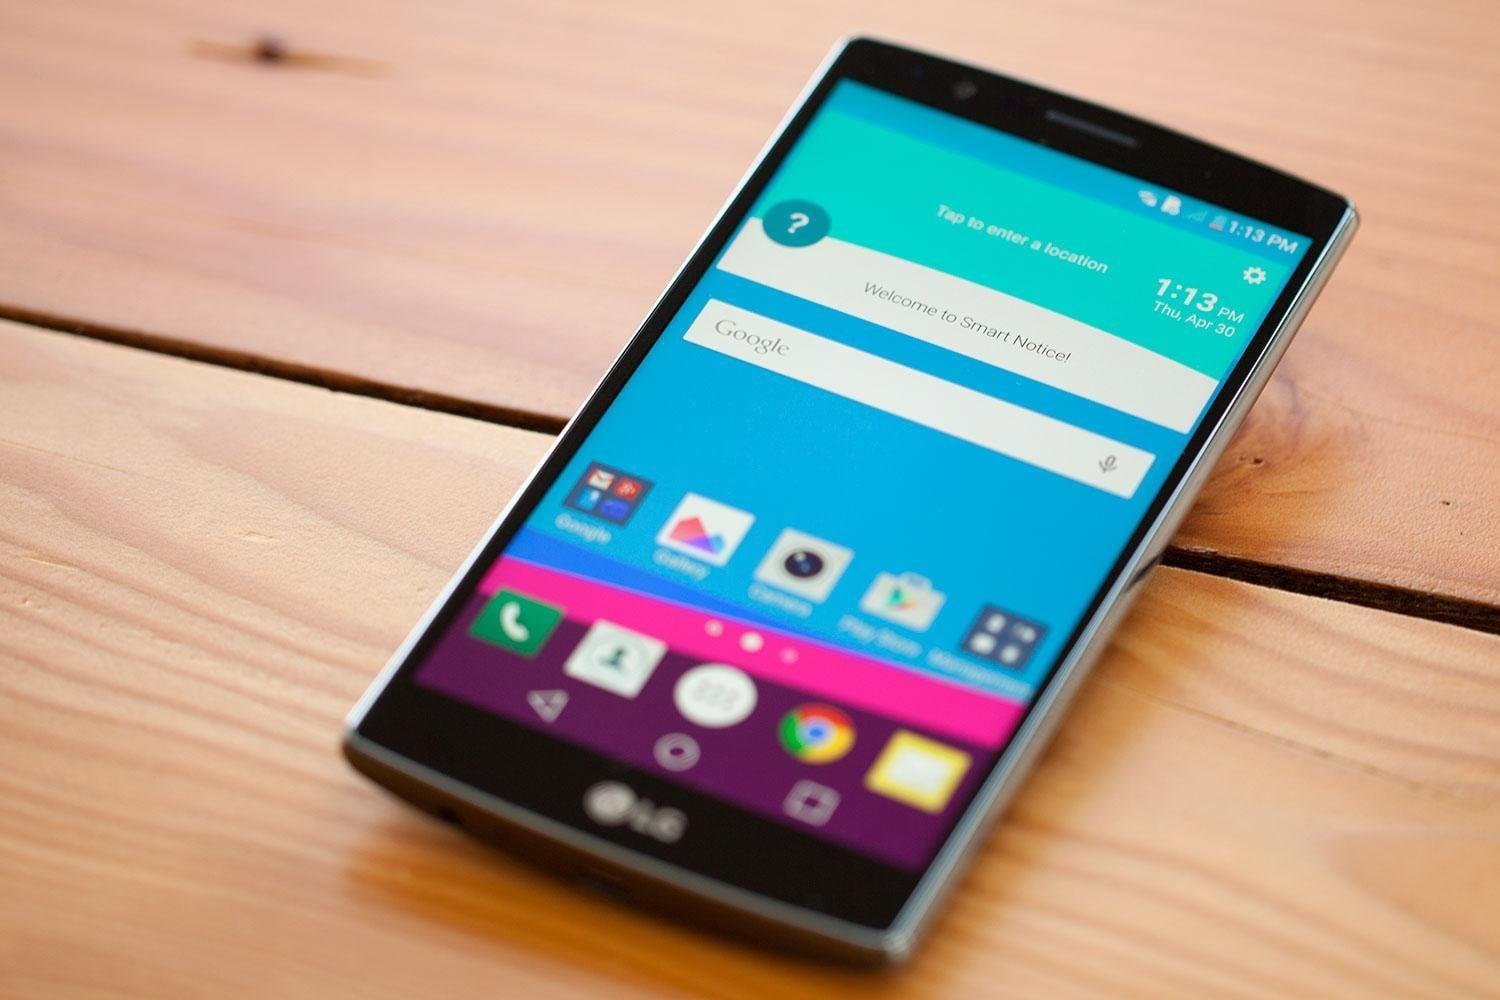 LG G4: Common Problems and How to Fix Them | Digital Trends